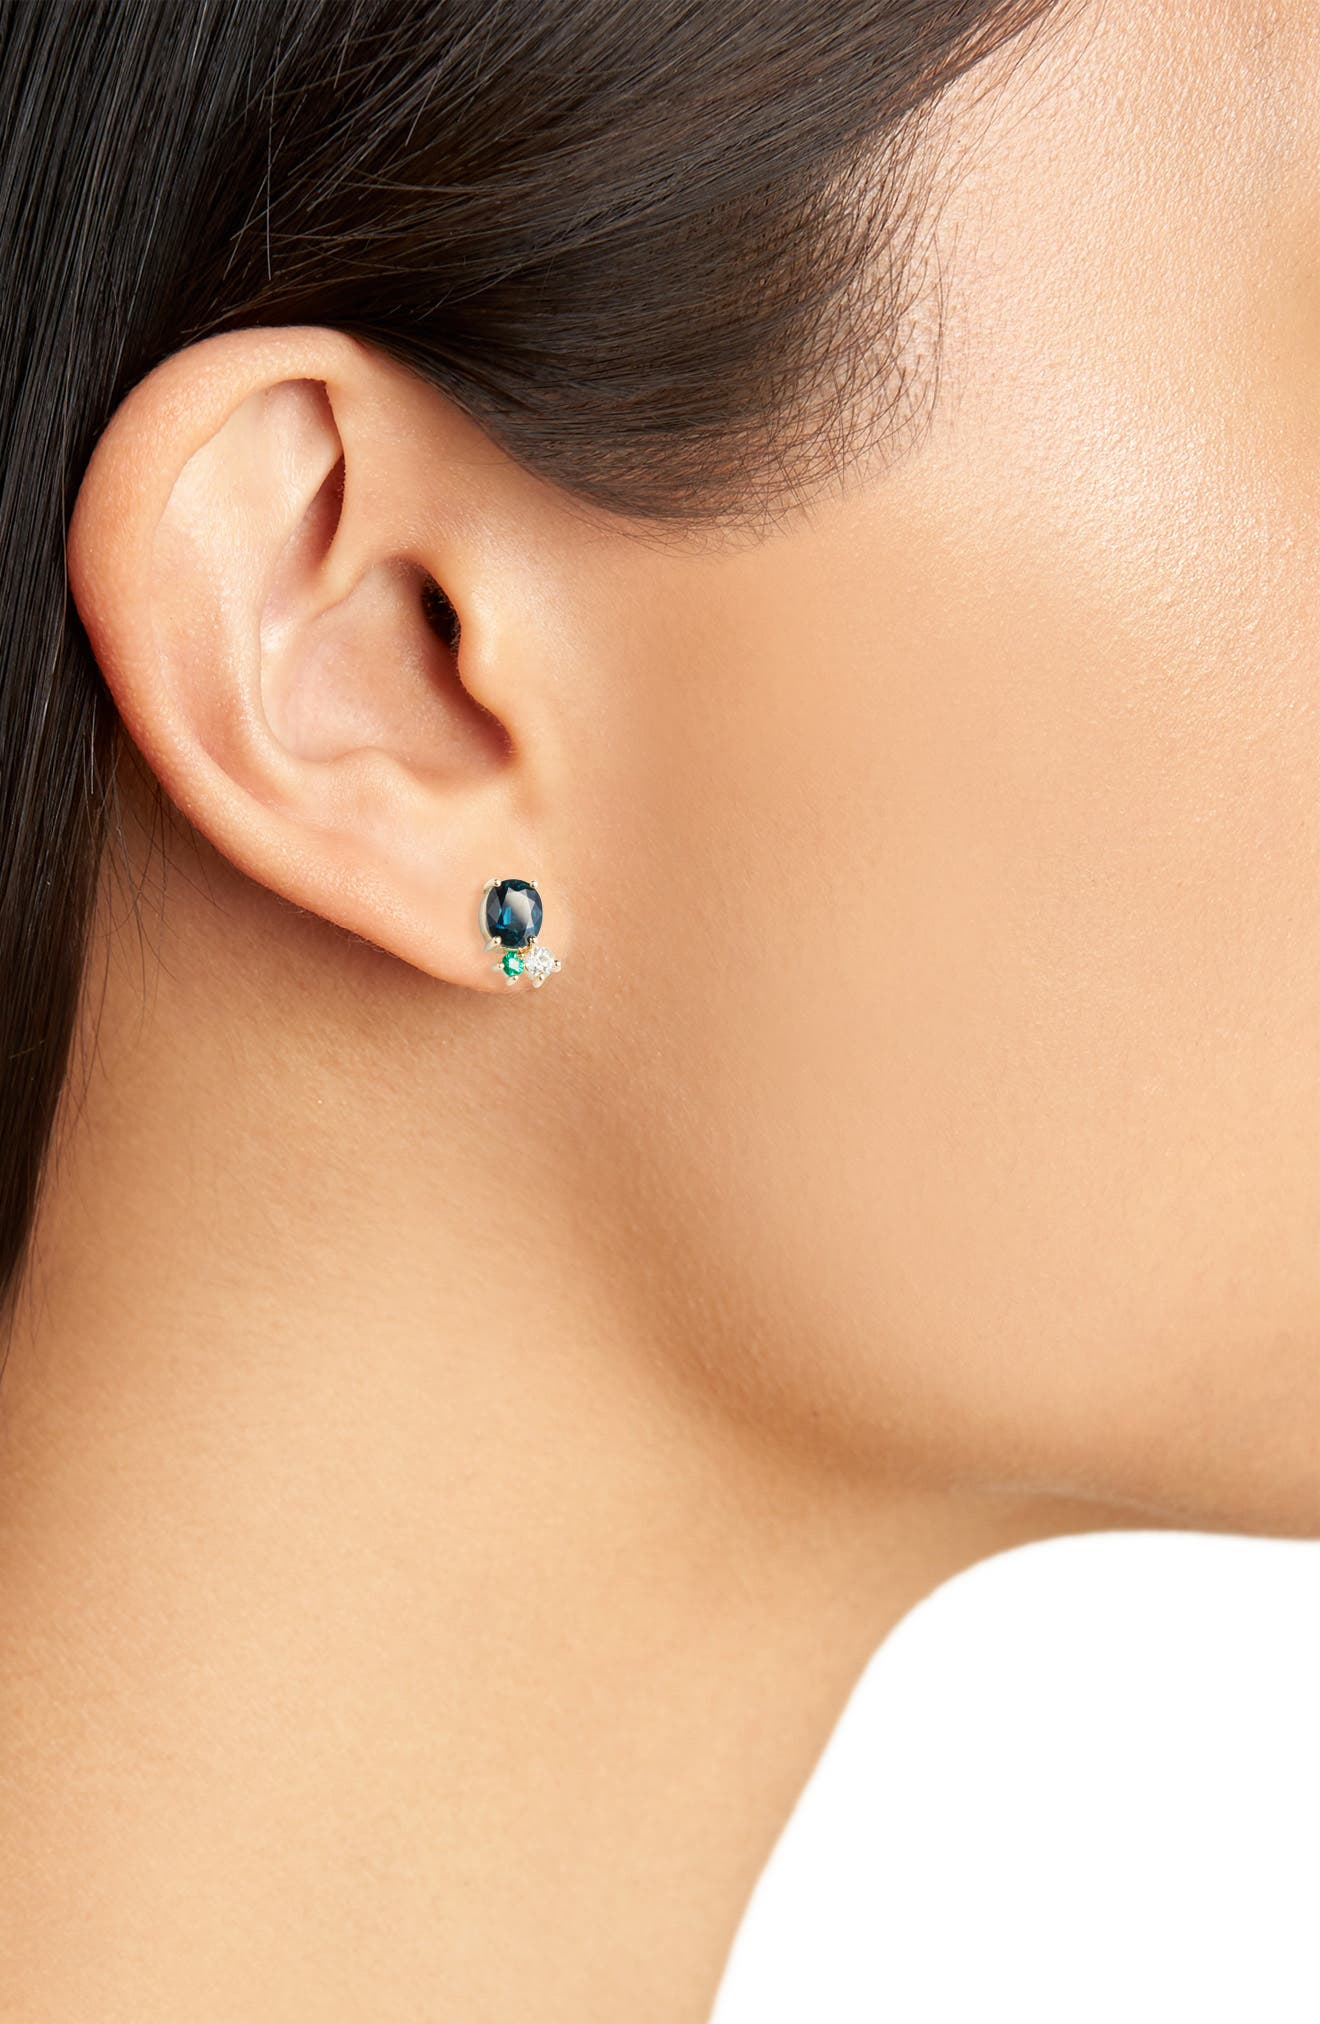 Sapphire, Diamond & Emerald Earrings,                             Alternate thumbnail 2, color,                             710